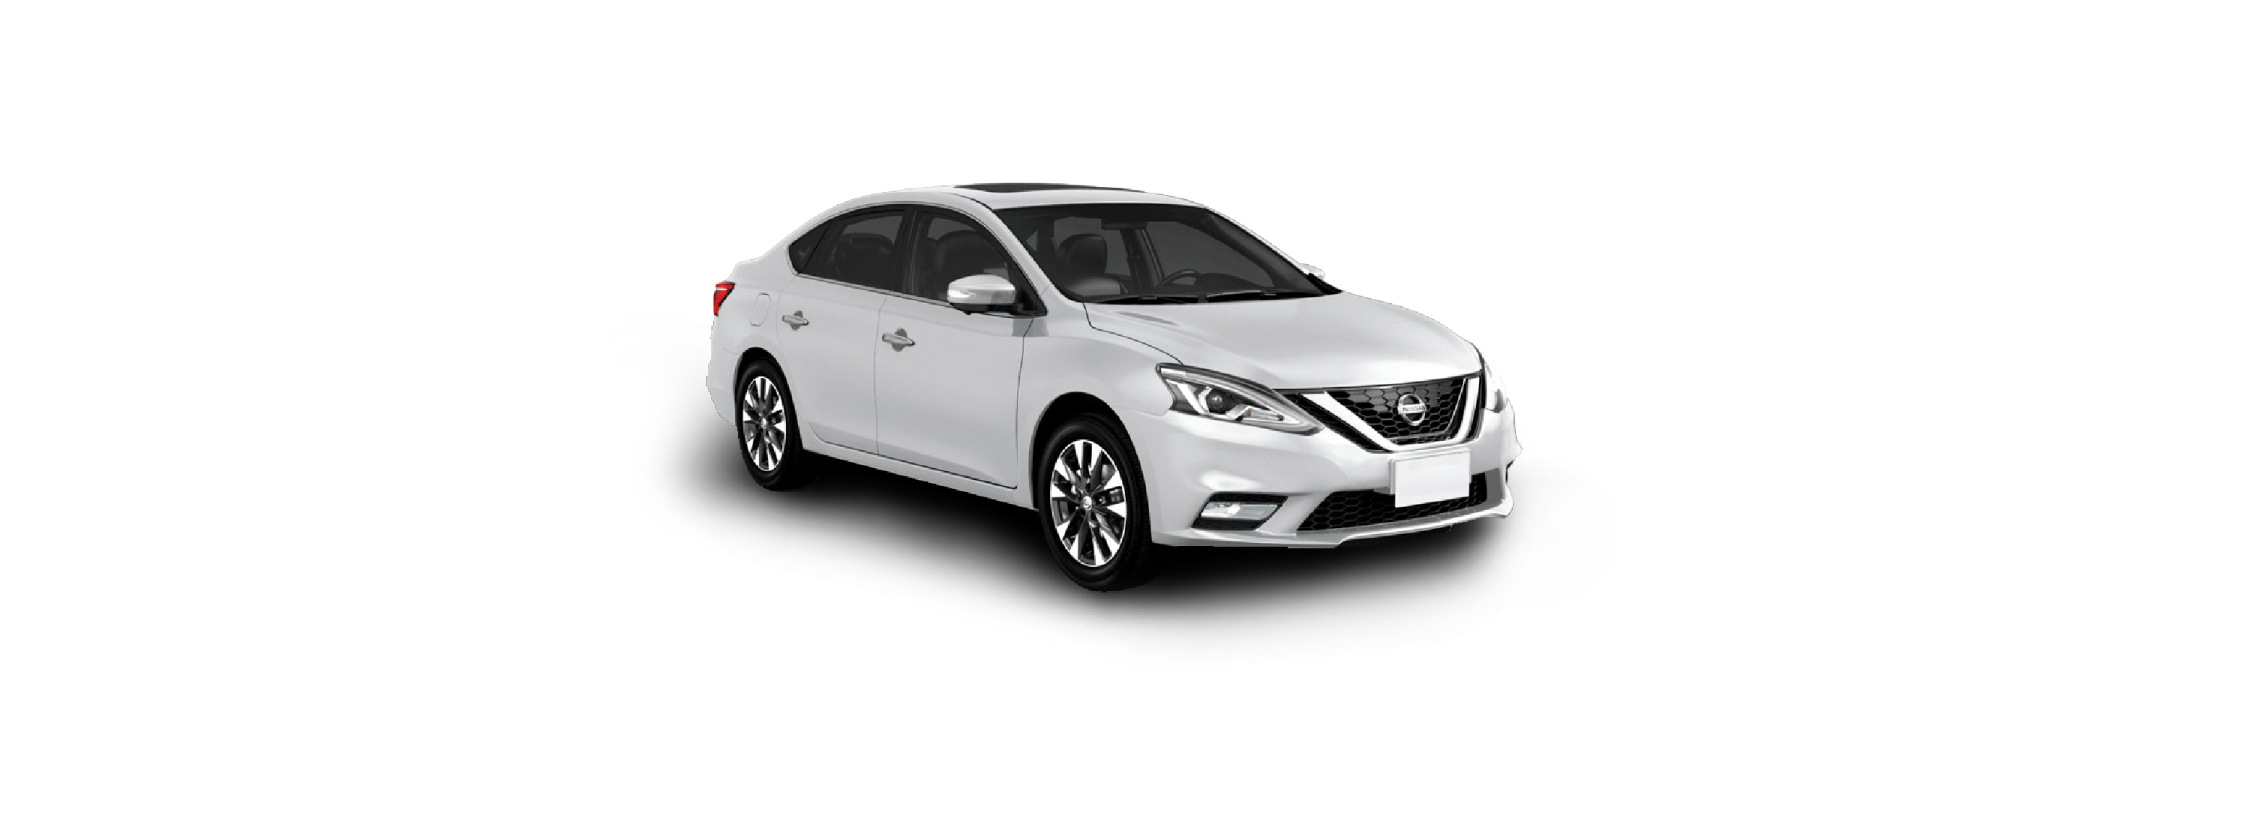 New Sylphy Elegance Refreshed Nissan Singapore